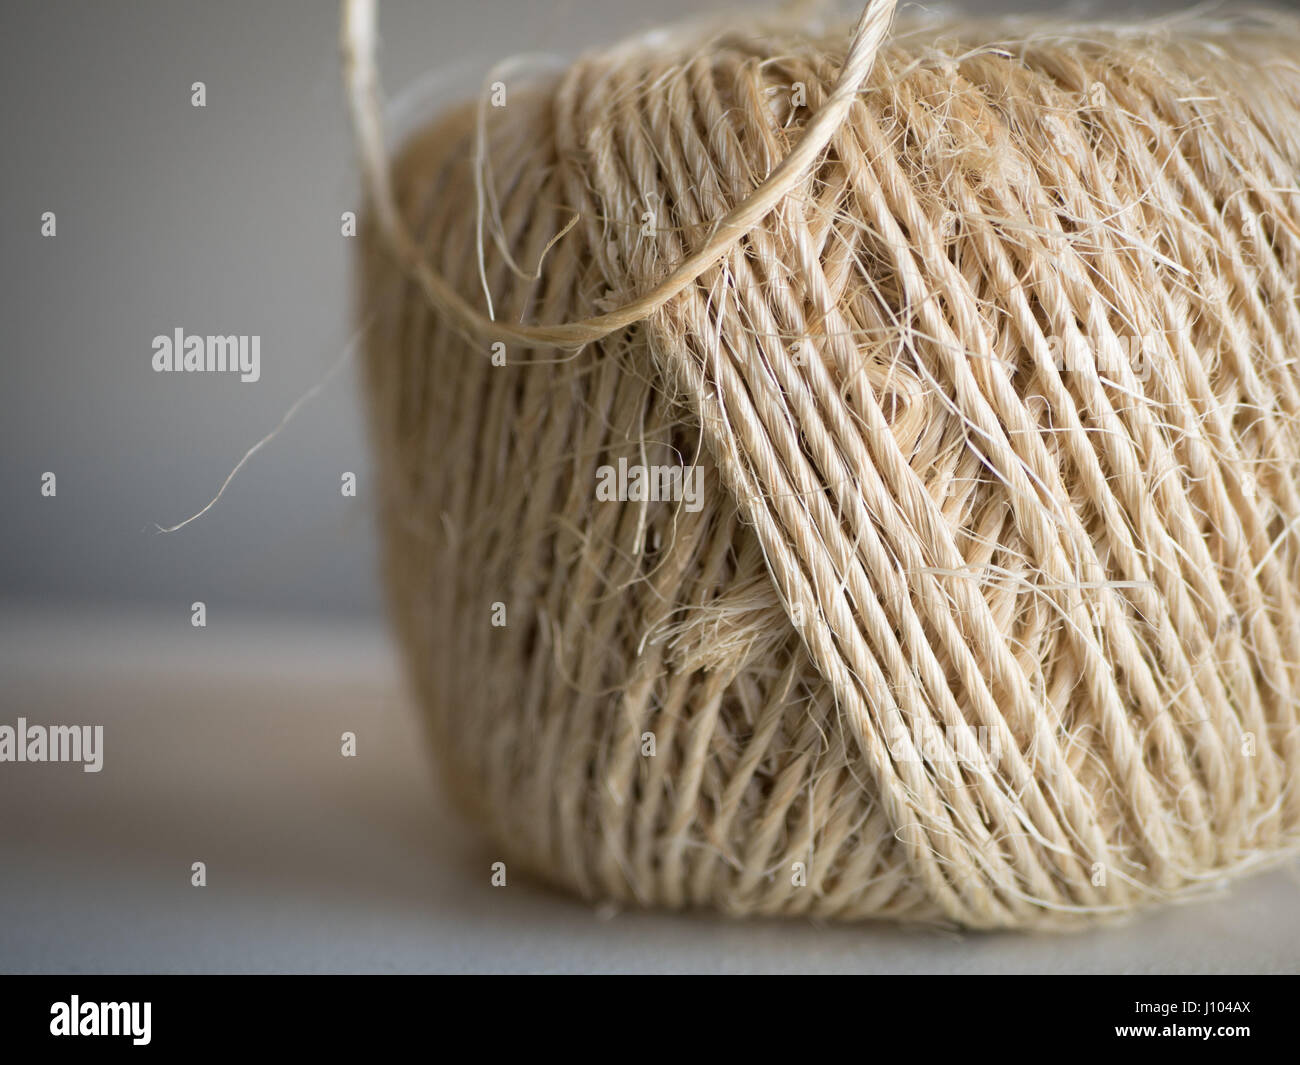 A closeup of jute twine - Stock Image